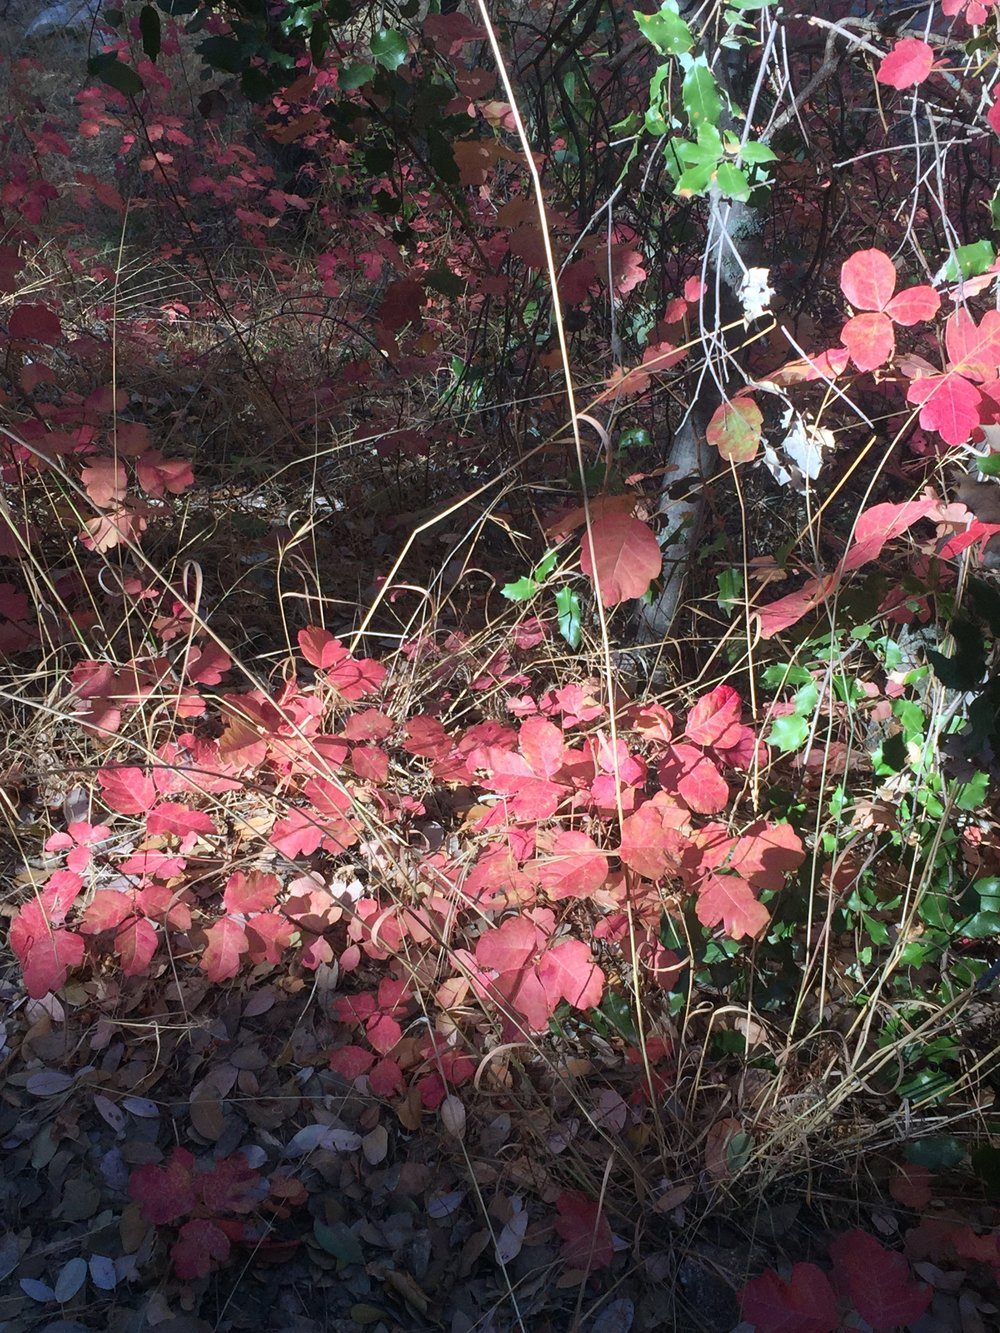 Our old 'friend' poison oak along the trail through Shake Canyon